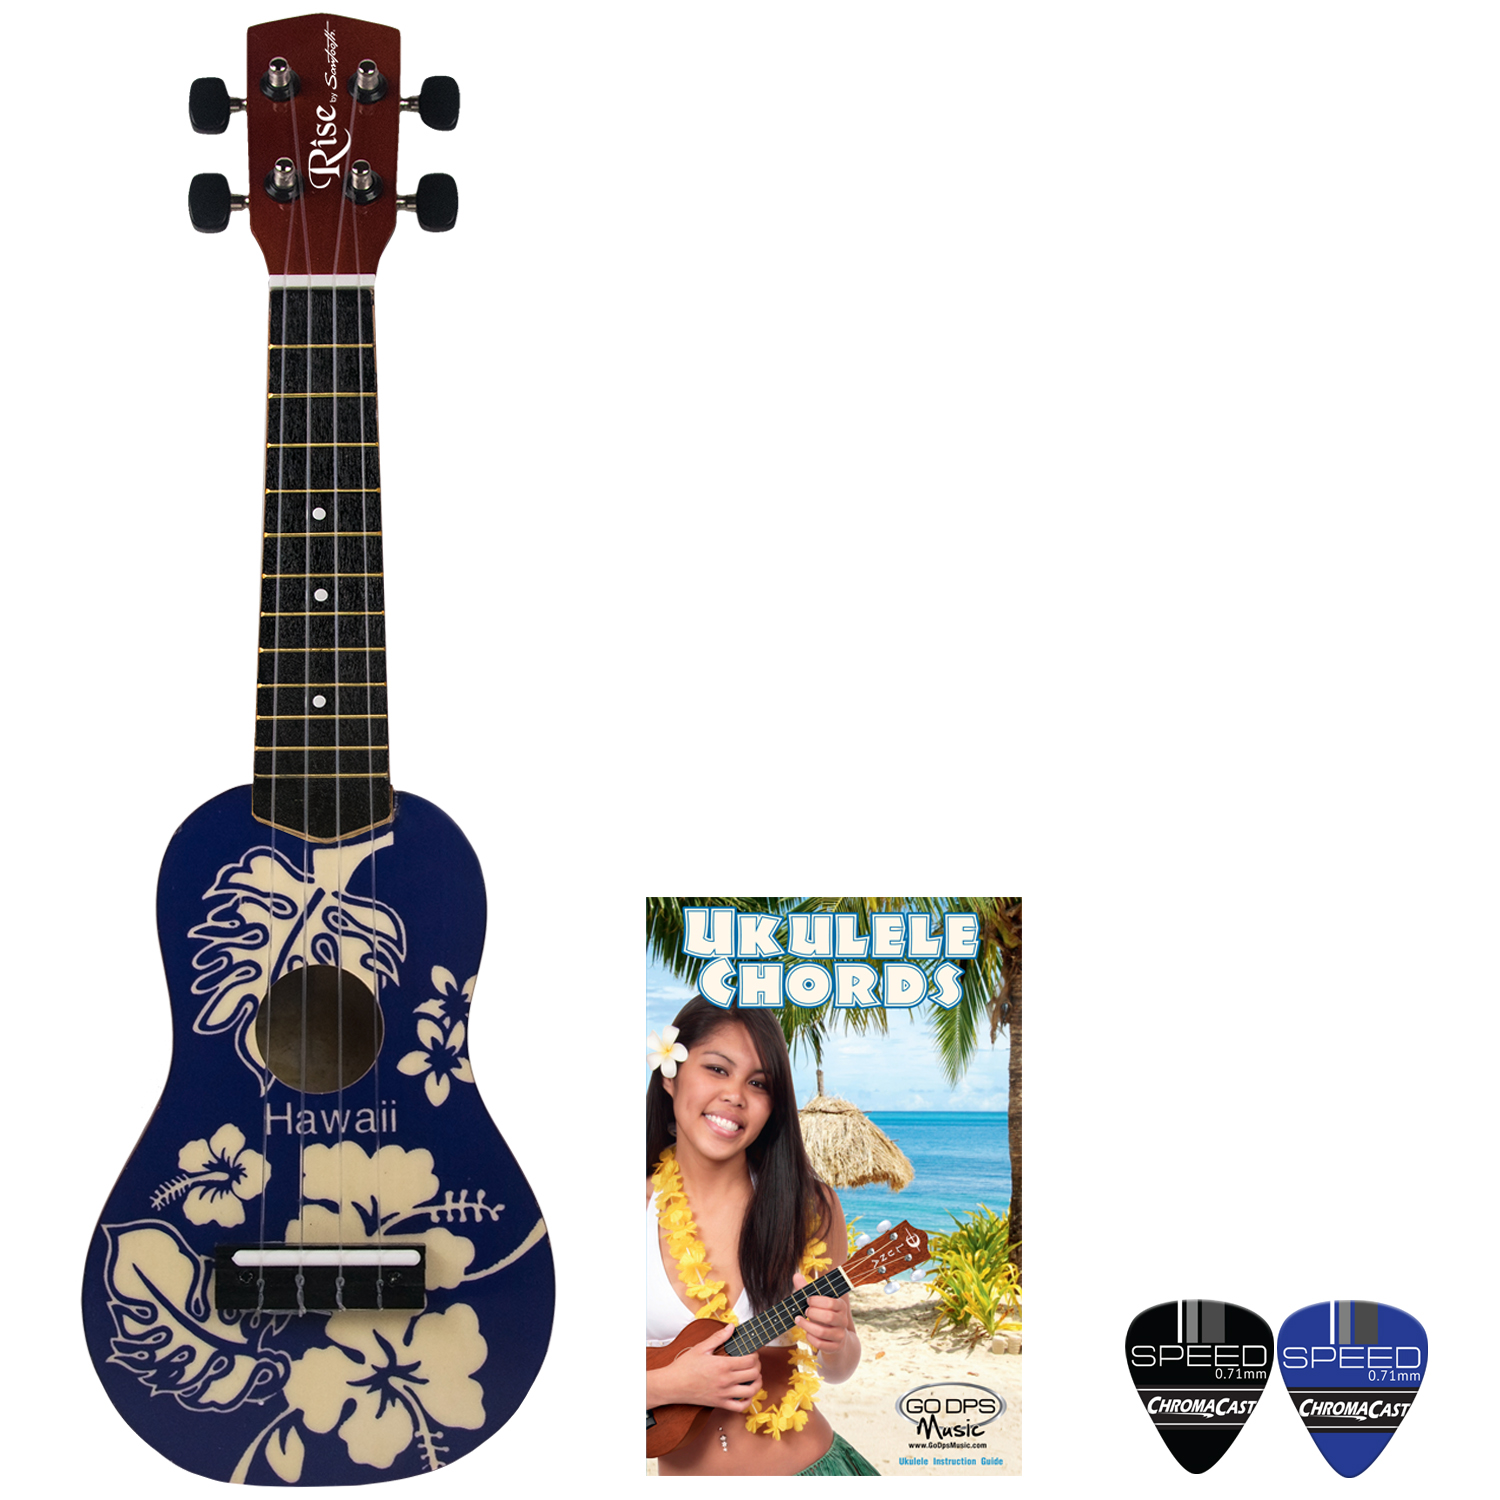 Rise by Sawtooth Beginner's Ukulele with Picks, Blue Hawaii